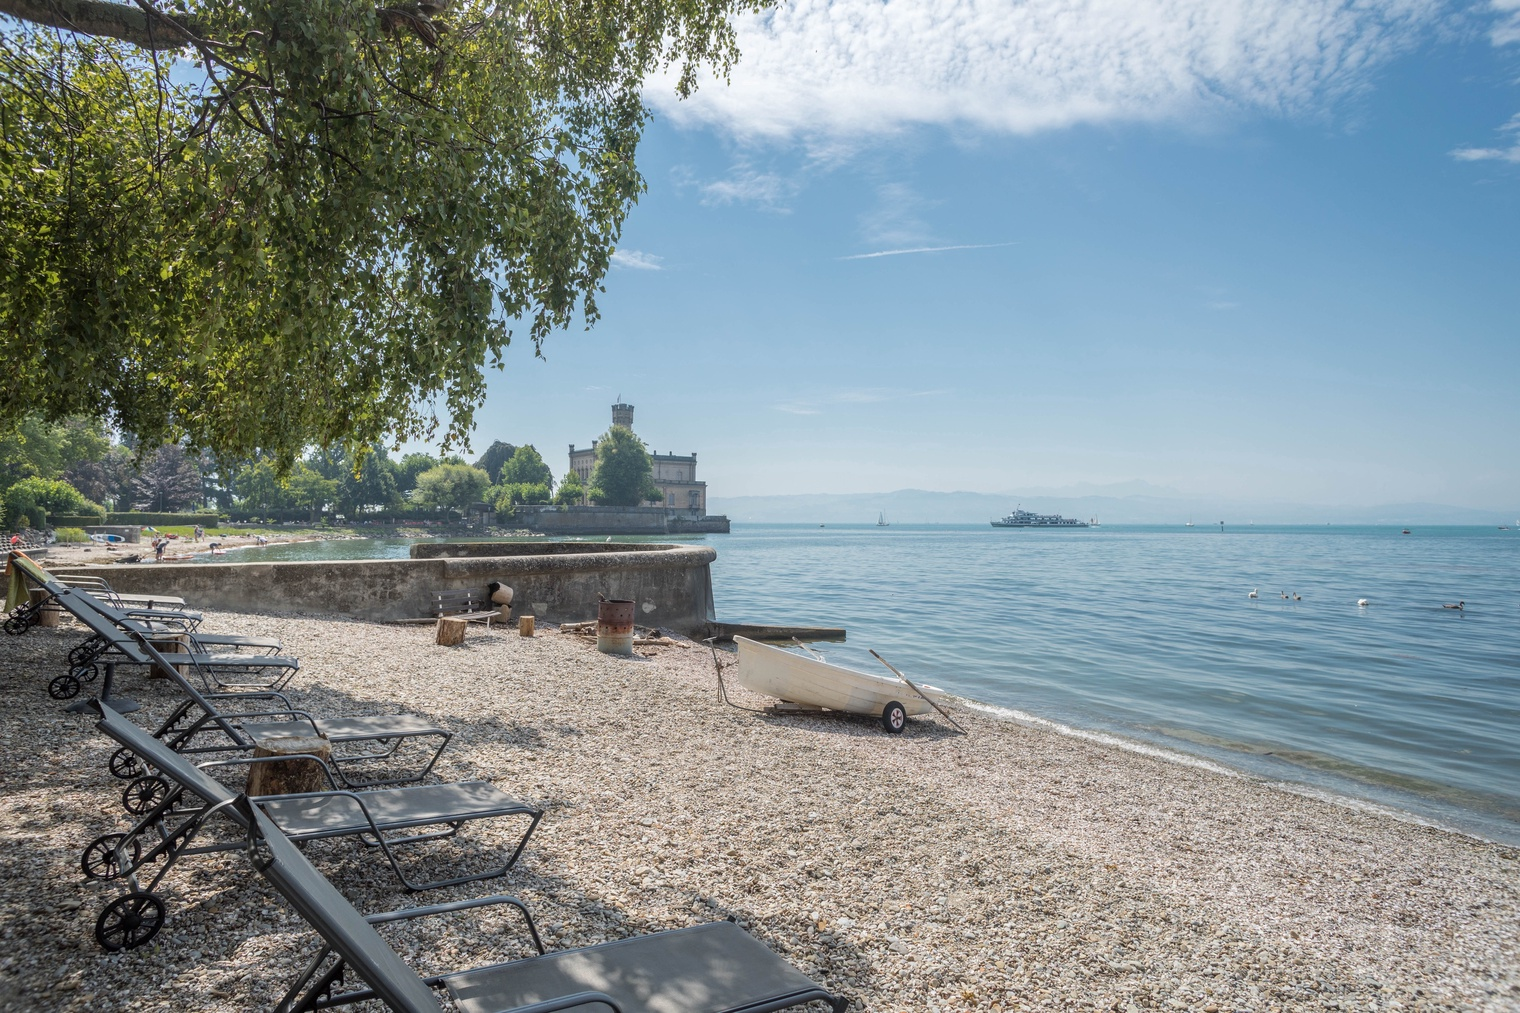 Sinah Heinemann on Lake Constance: Keeping Tradition and Looking Ahead